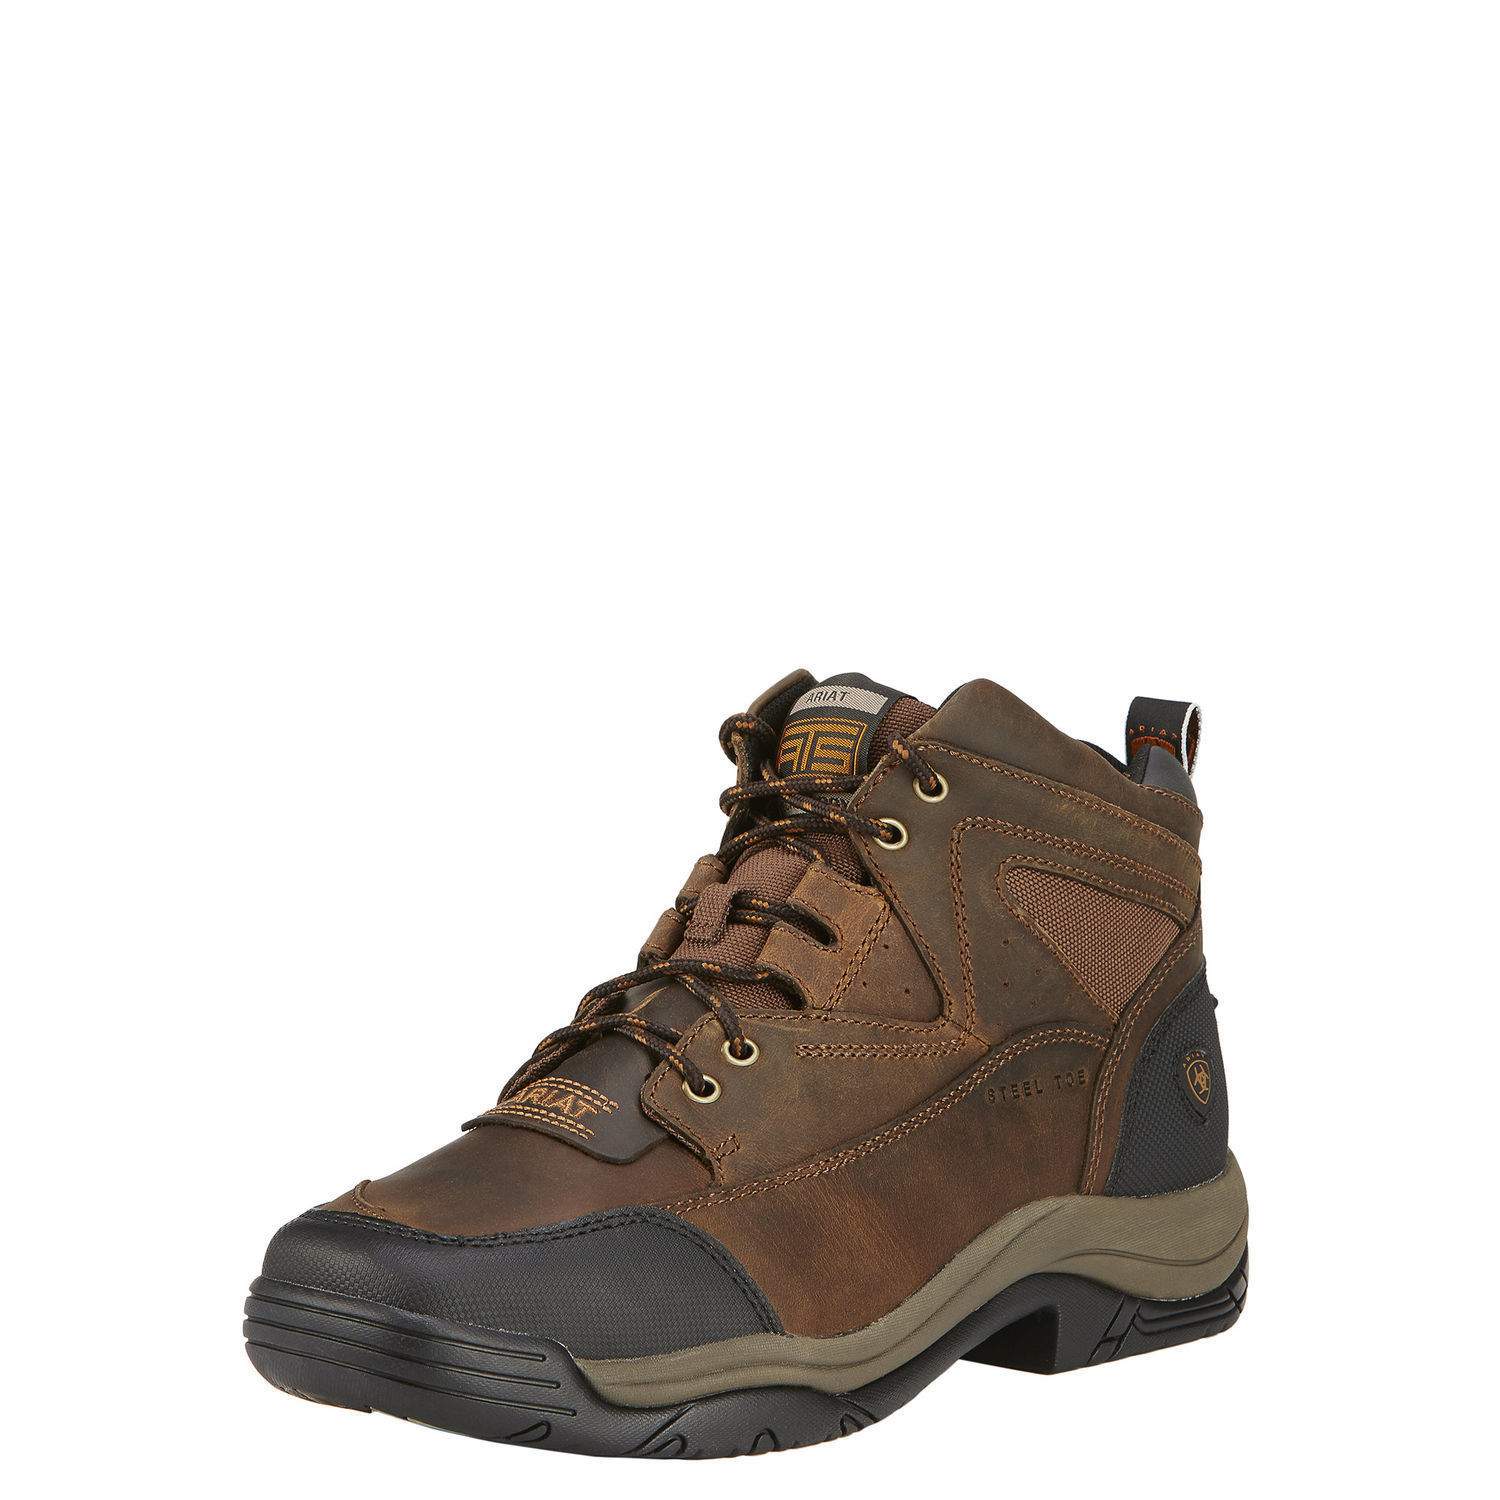 100% original Super discount footwear Details about Ariat 10016379 Terrain Wide Square Steel Safety Toe 5